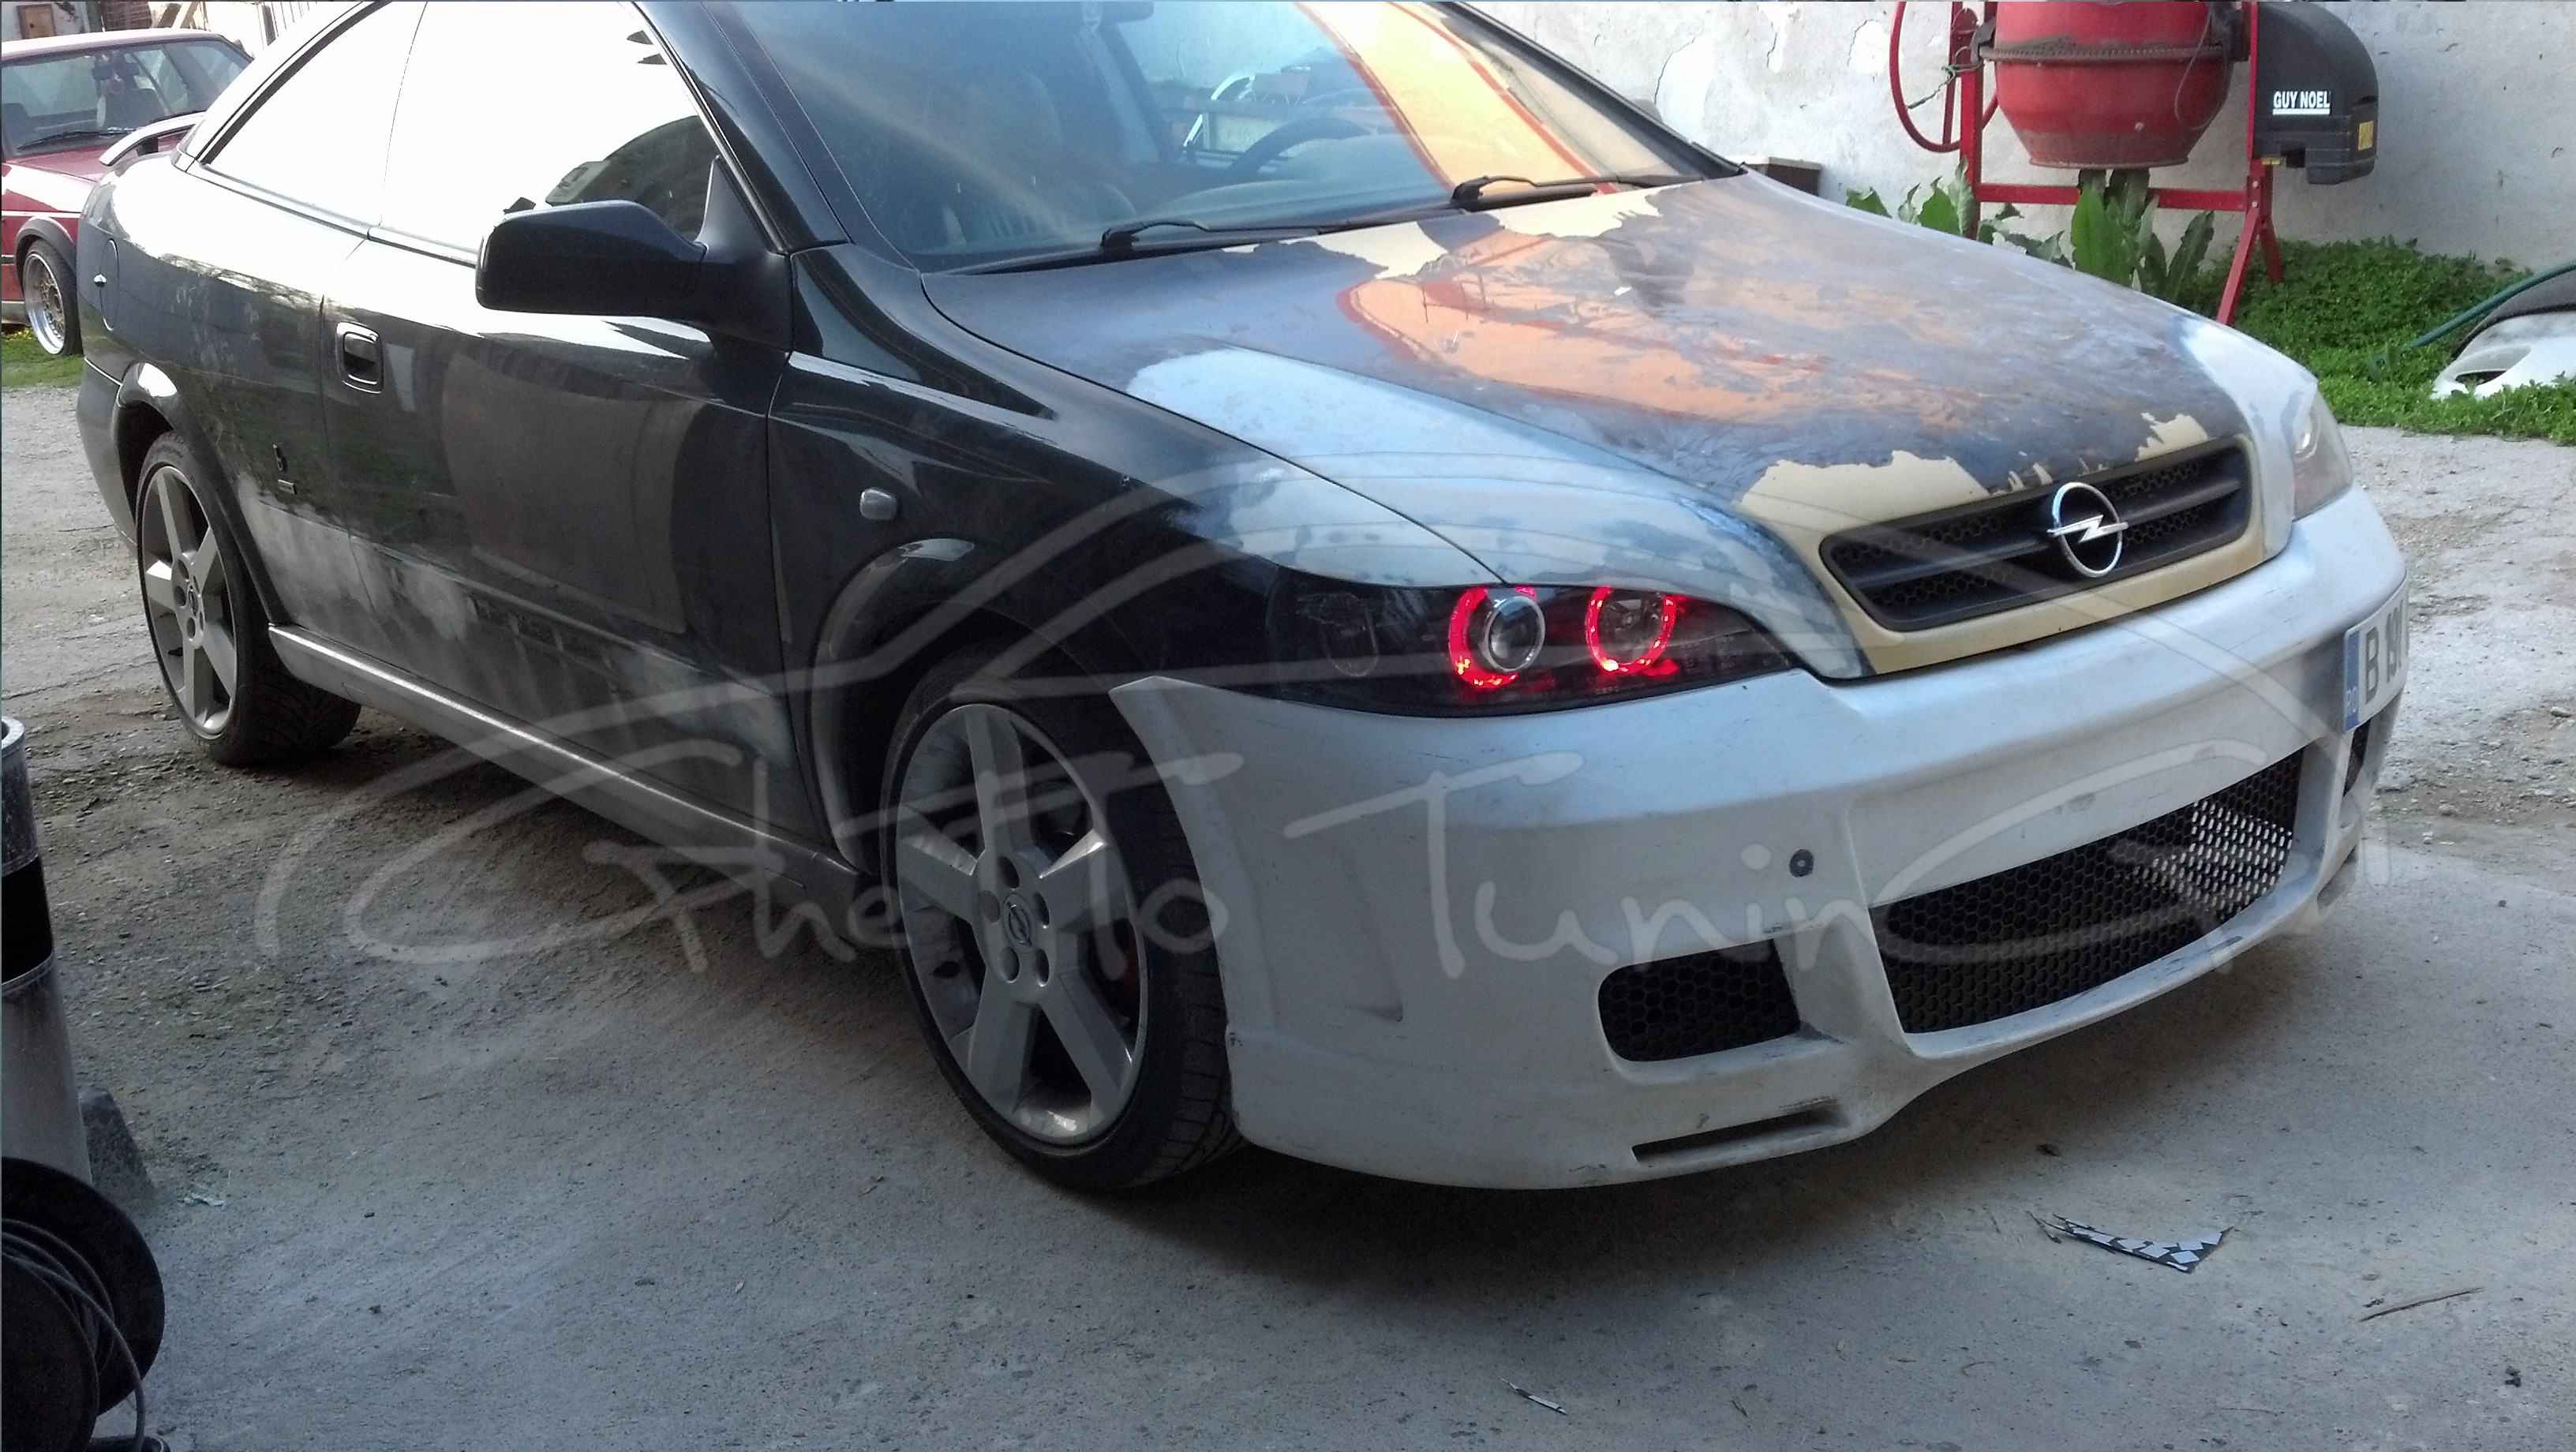 Ghetto Tuning 187 Blog Archive 187 Bad Boy Look Opel Astra